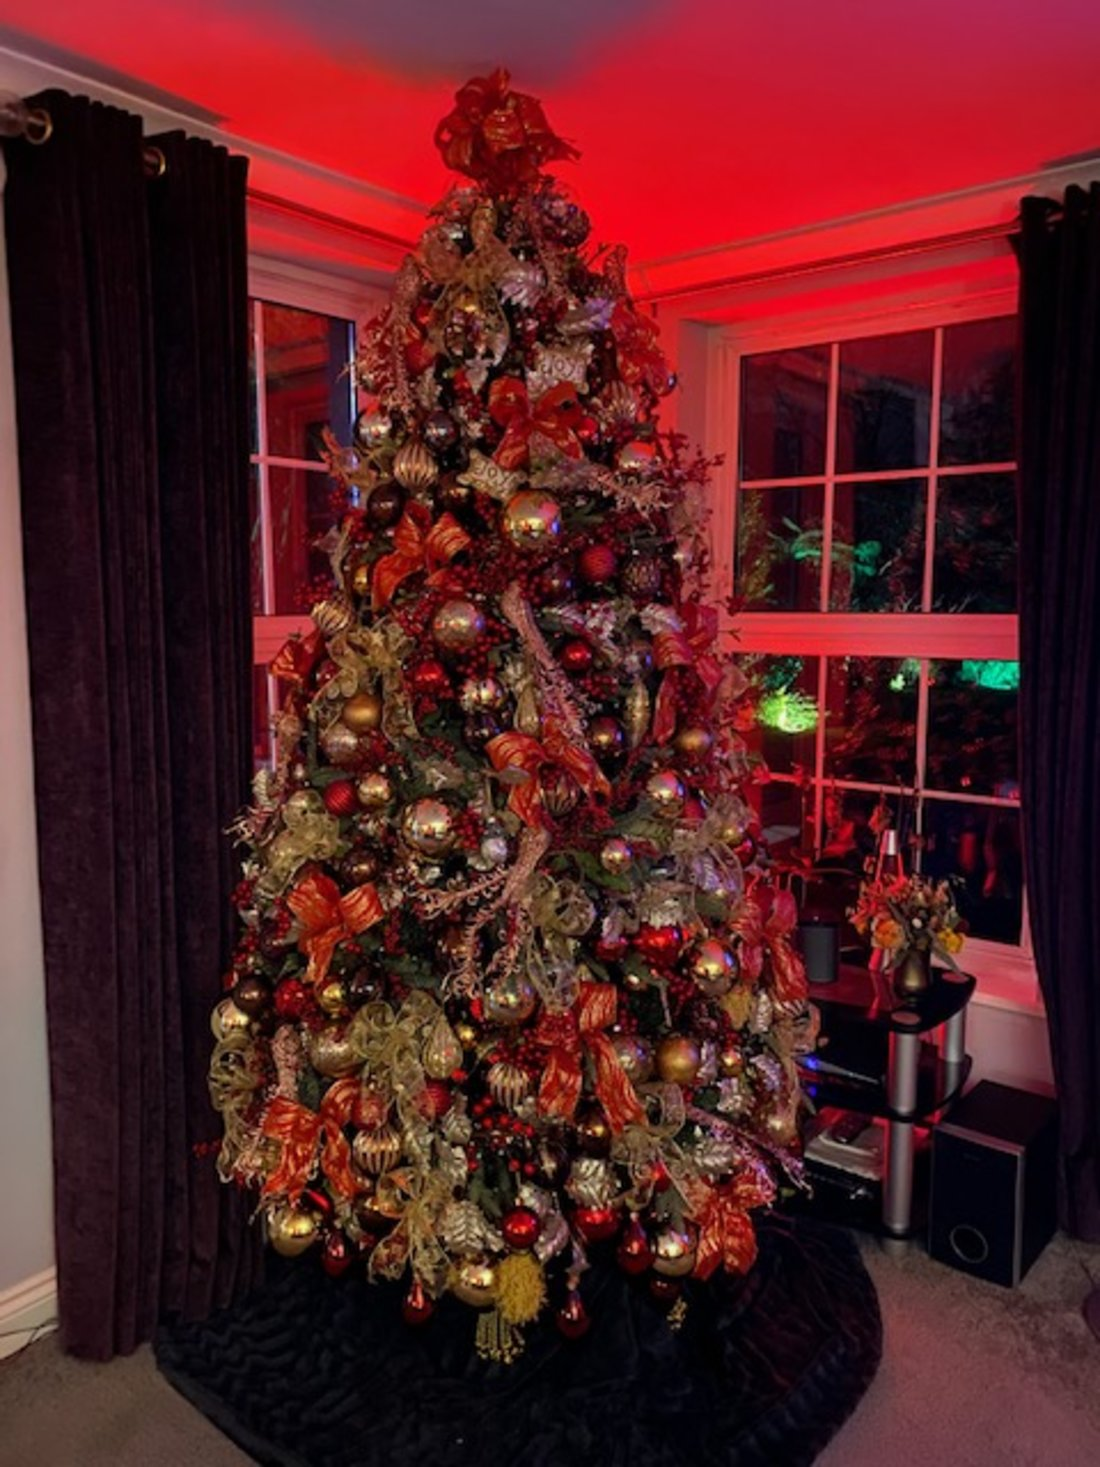 private-home-red-and-gold-xmas-tree